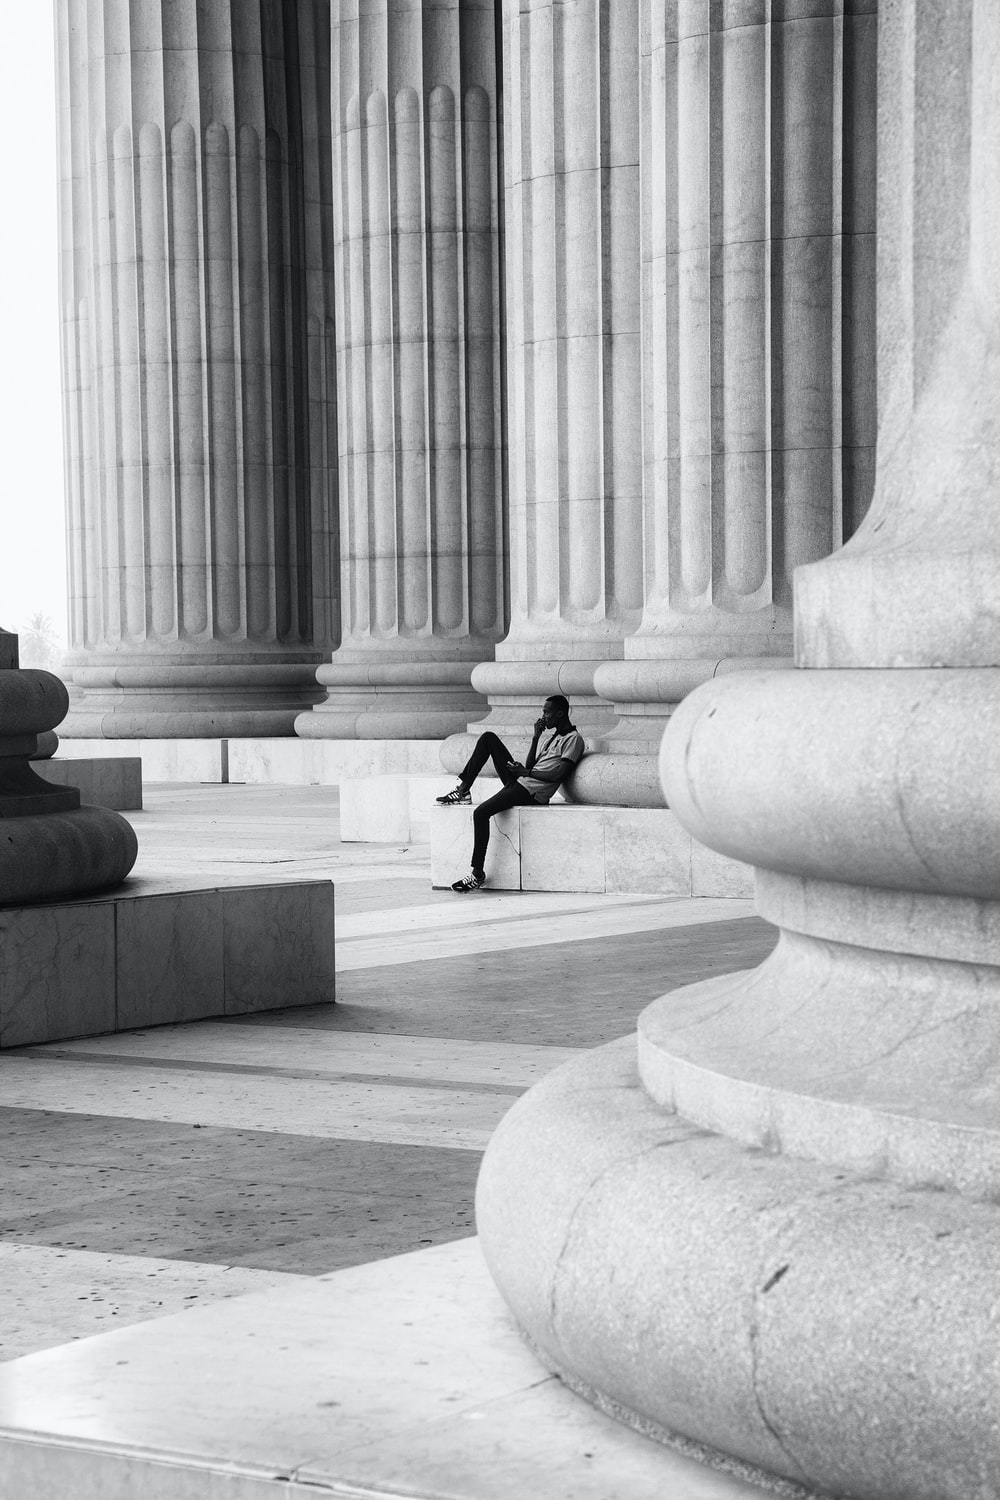 man in black jacket and pants sitting on concrete bench